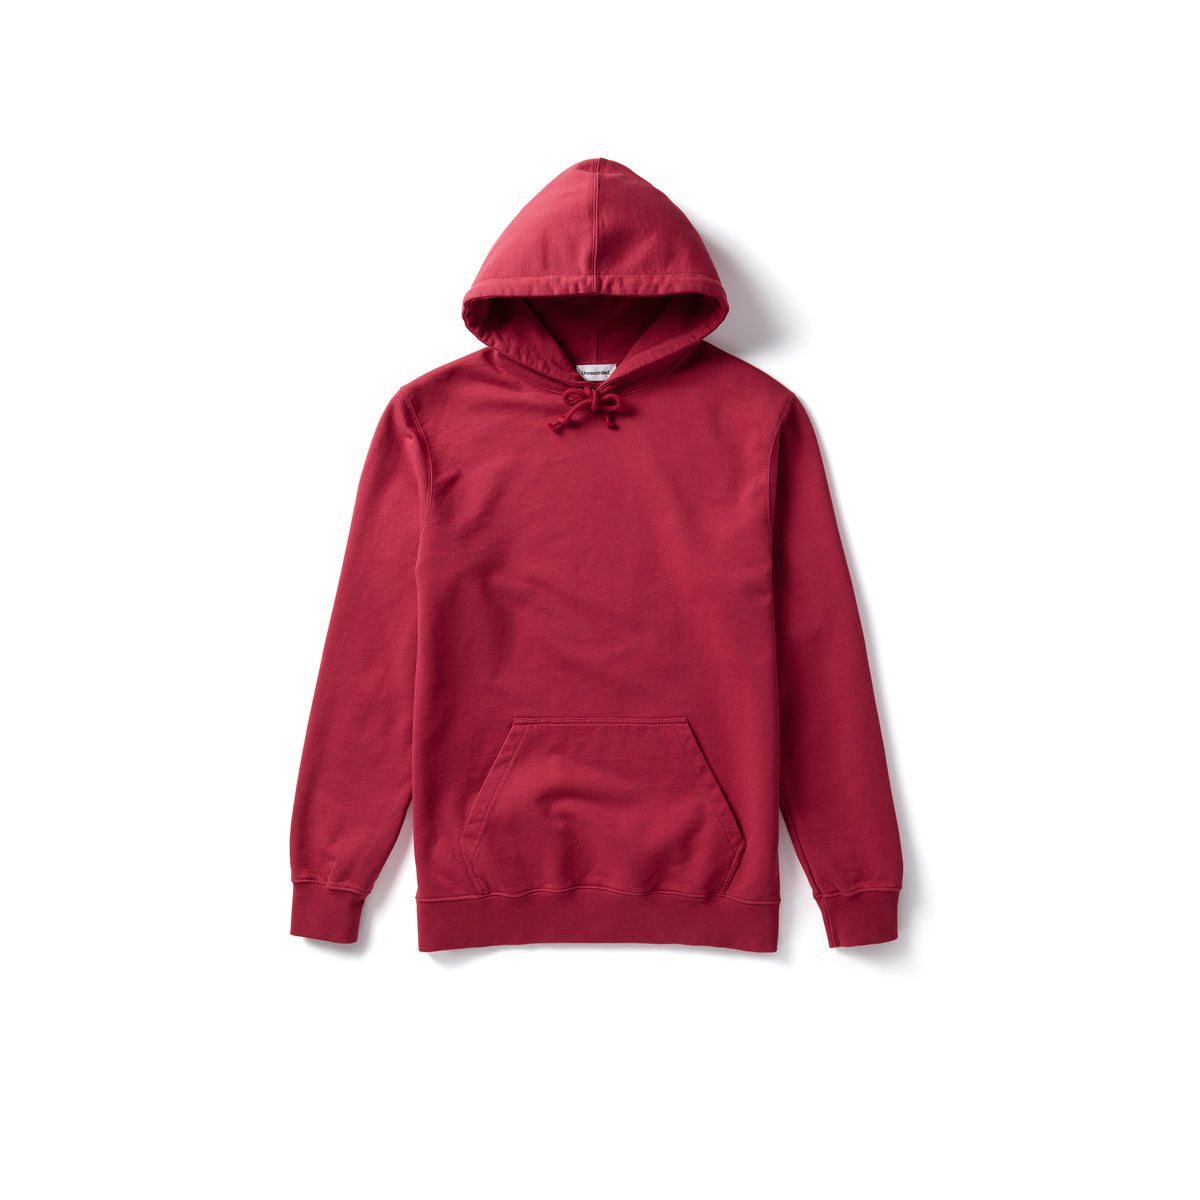 Hoodie Red - Unrecorded